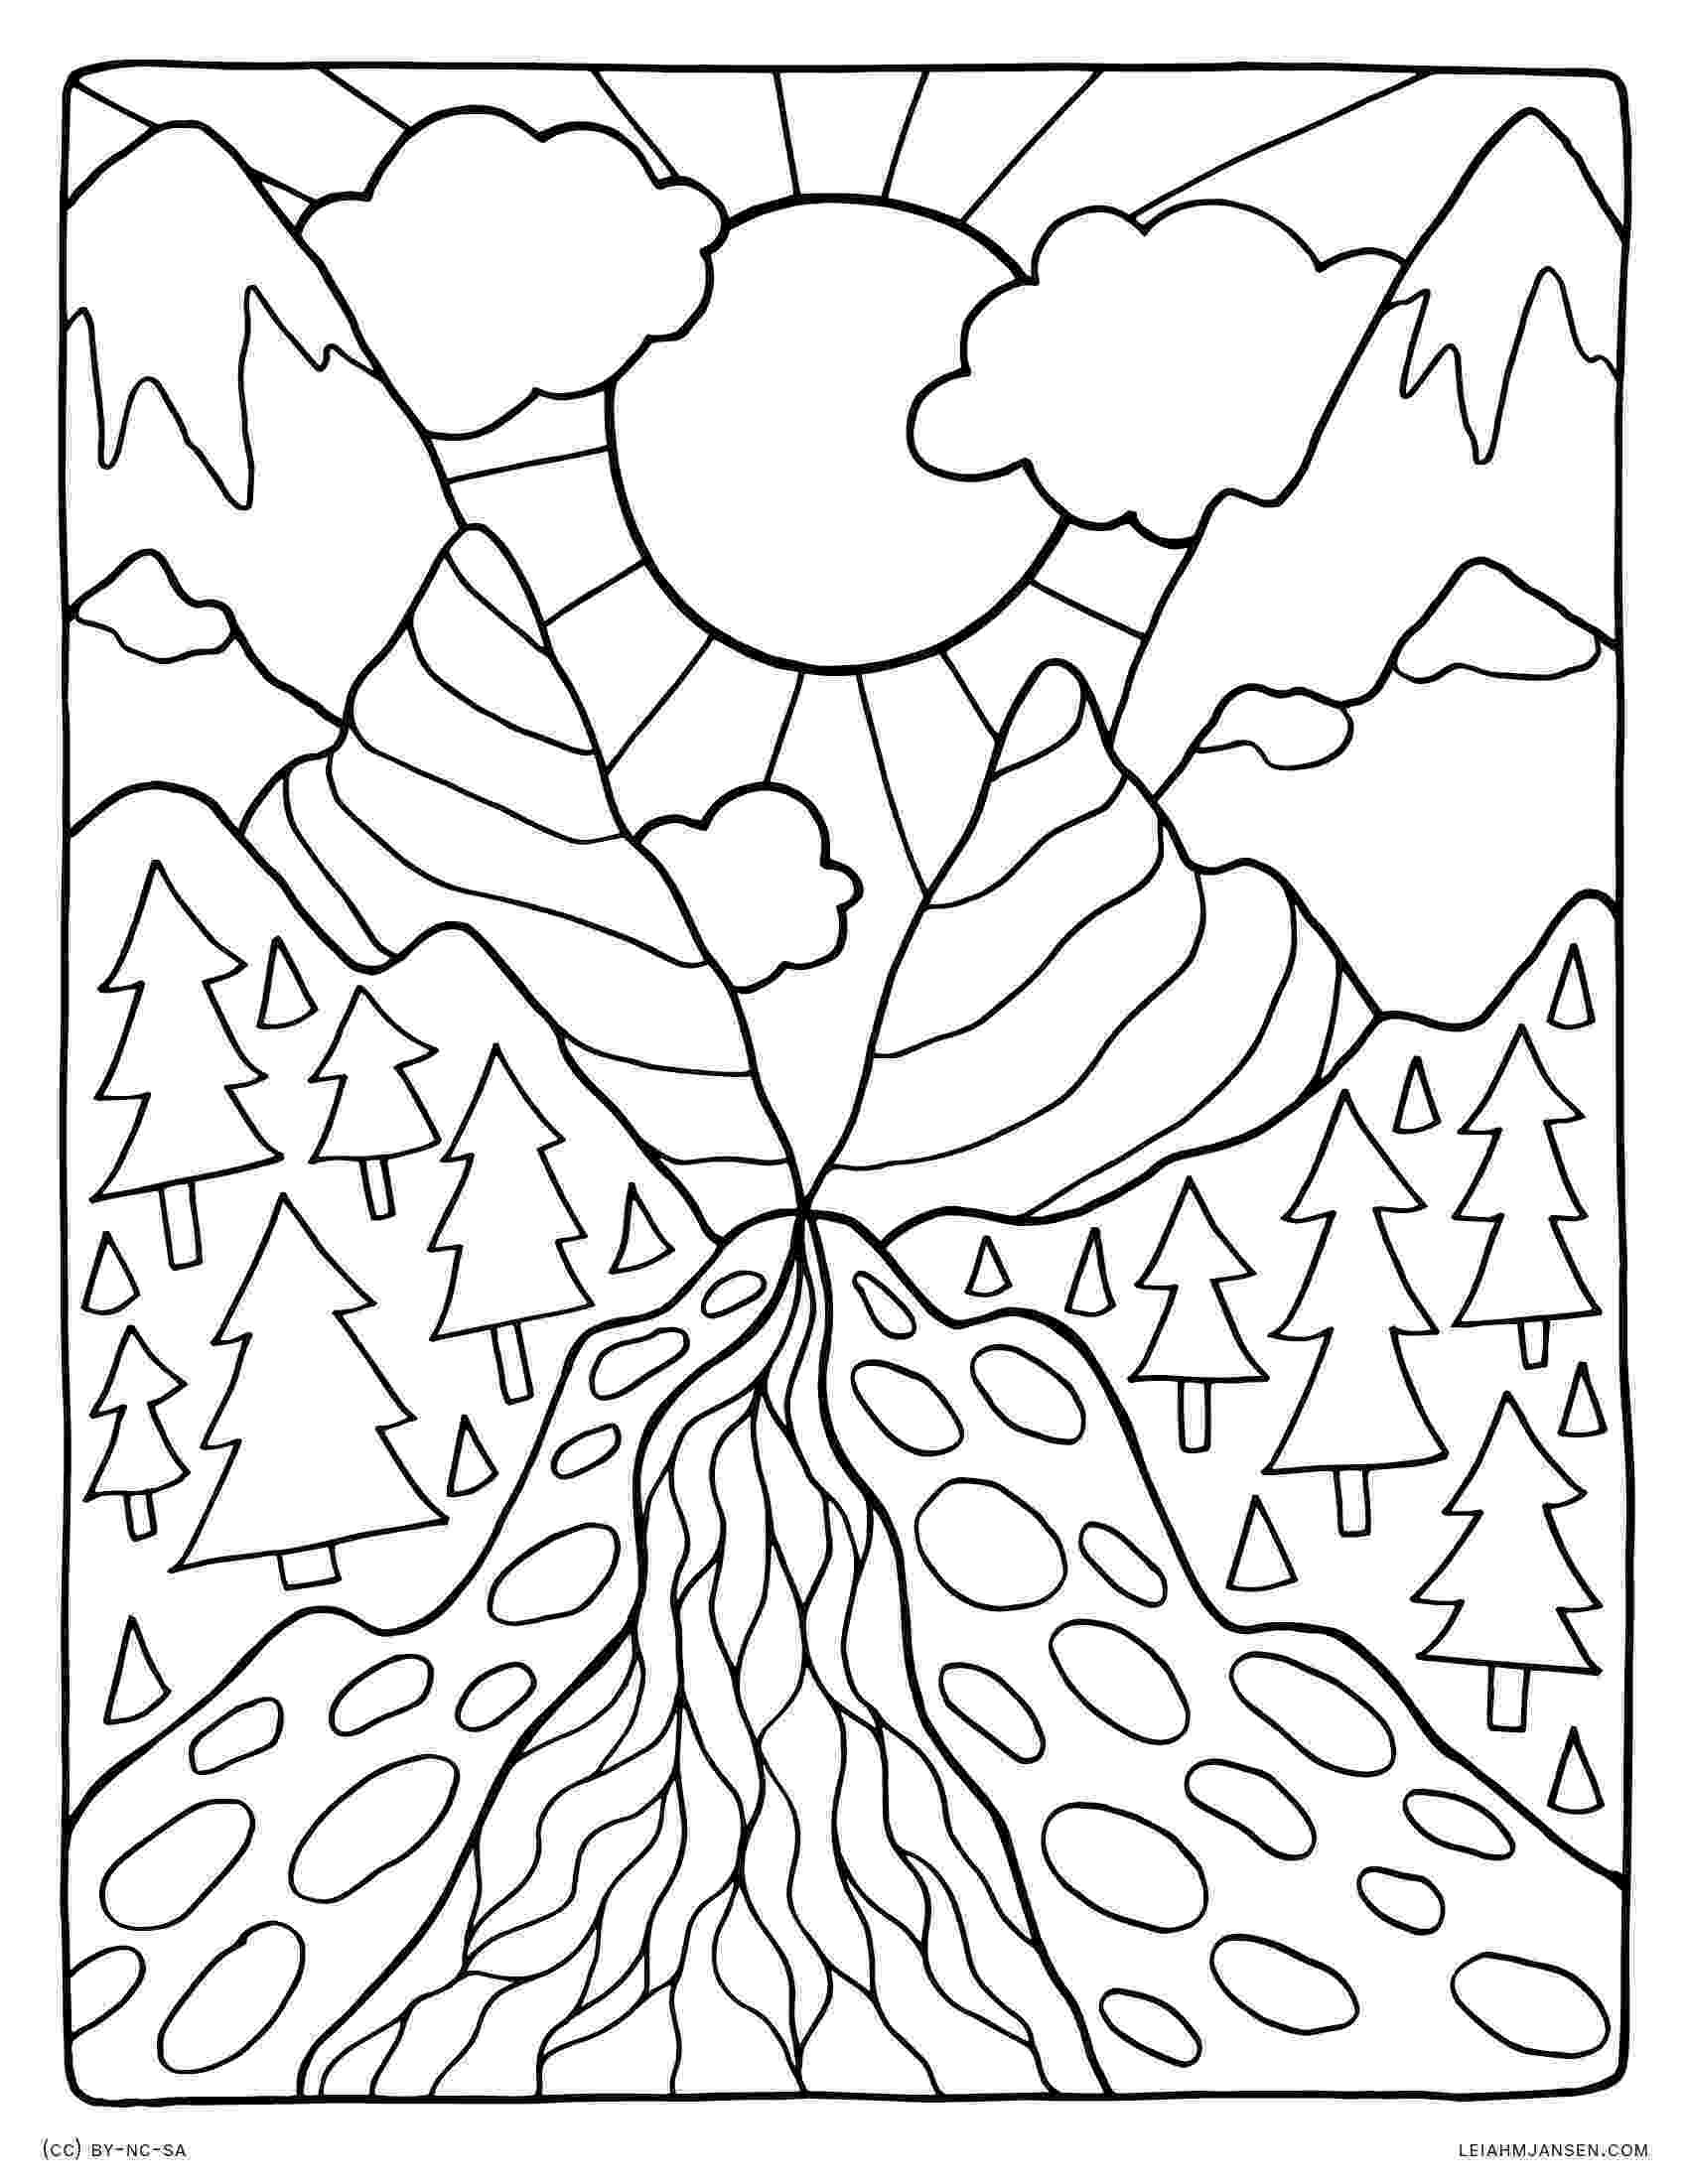 nature coloring pages for adults coloring pages for adultsdecorative hand drawn doodle pages coloring nature adults for